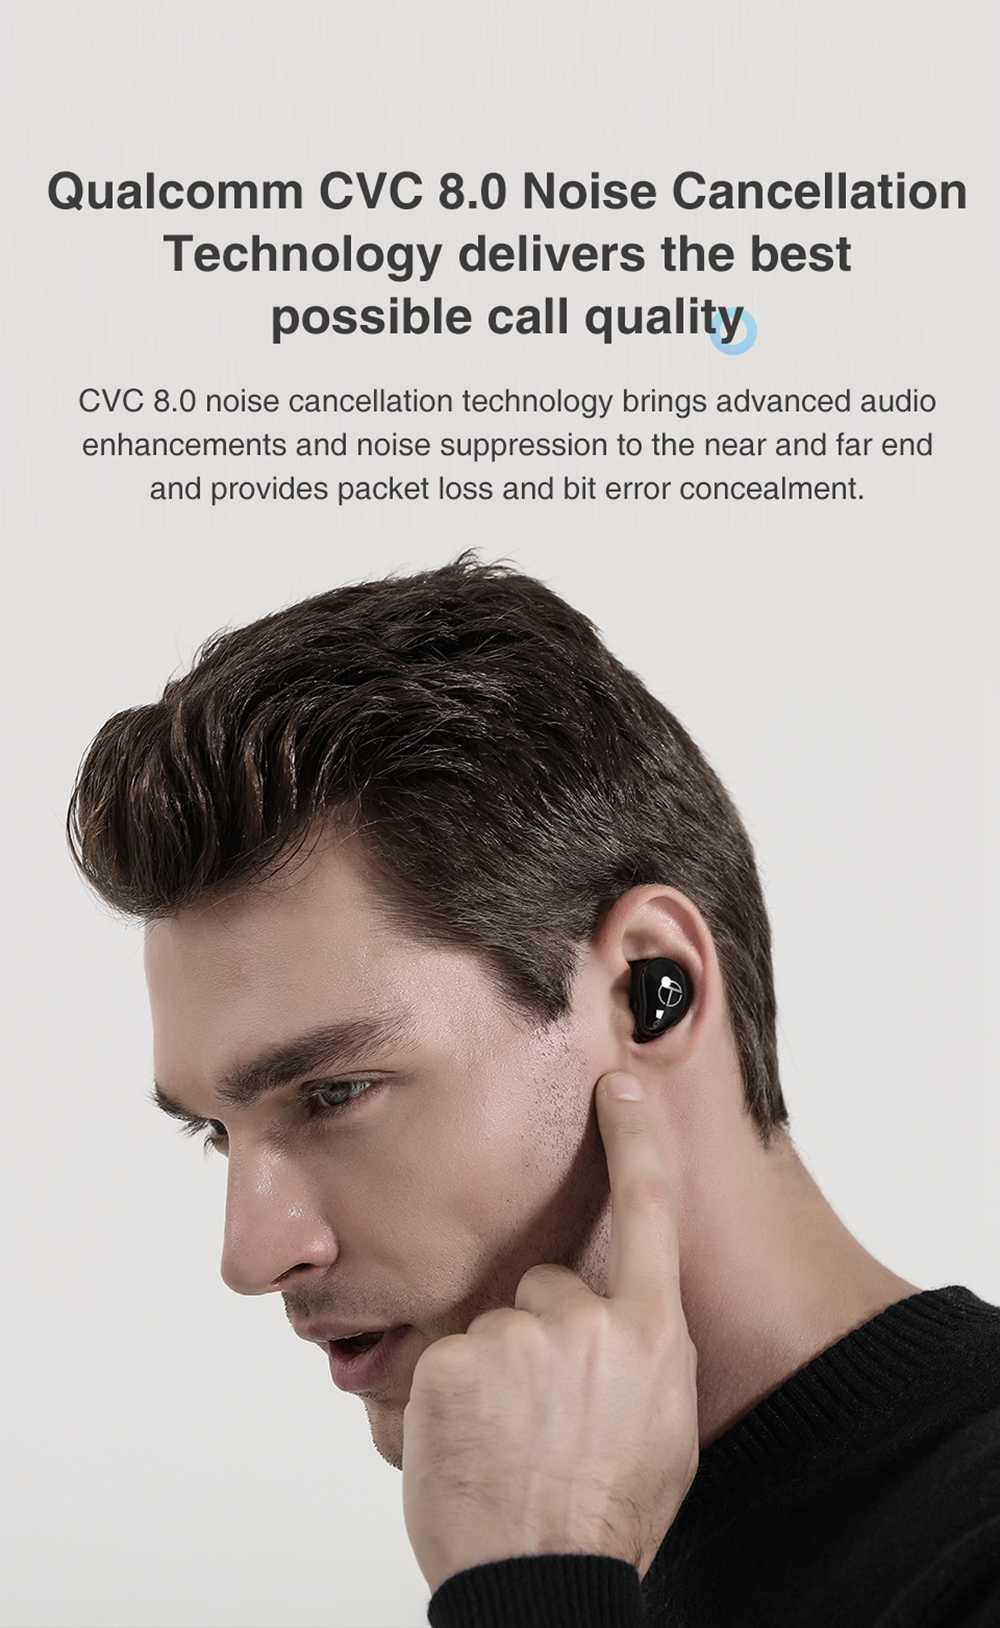 TRN T200 CVC 8.0 Earphones Qualcomm QCC3020 Volume Control aptX /AAC/ SBC Siri IPX5 7 Hours Playtime - Black